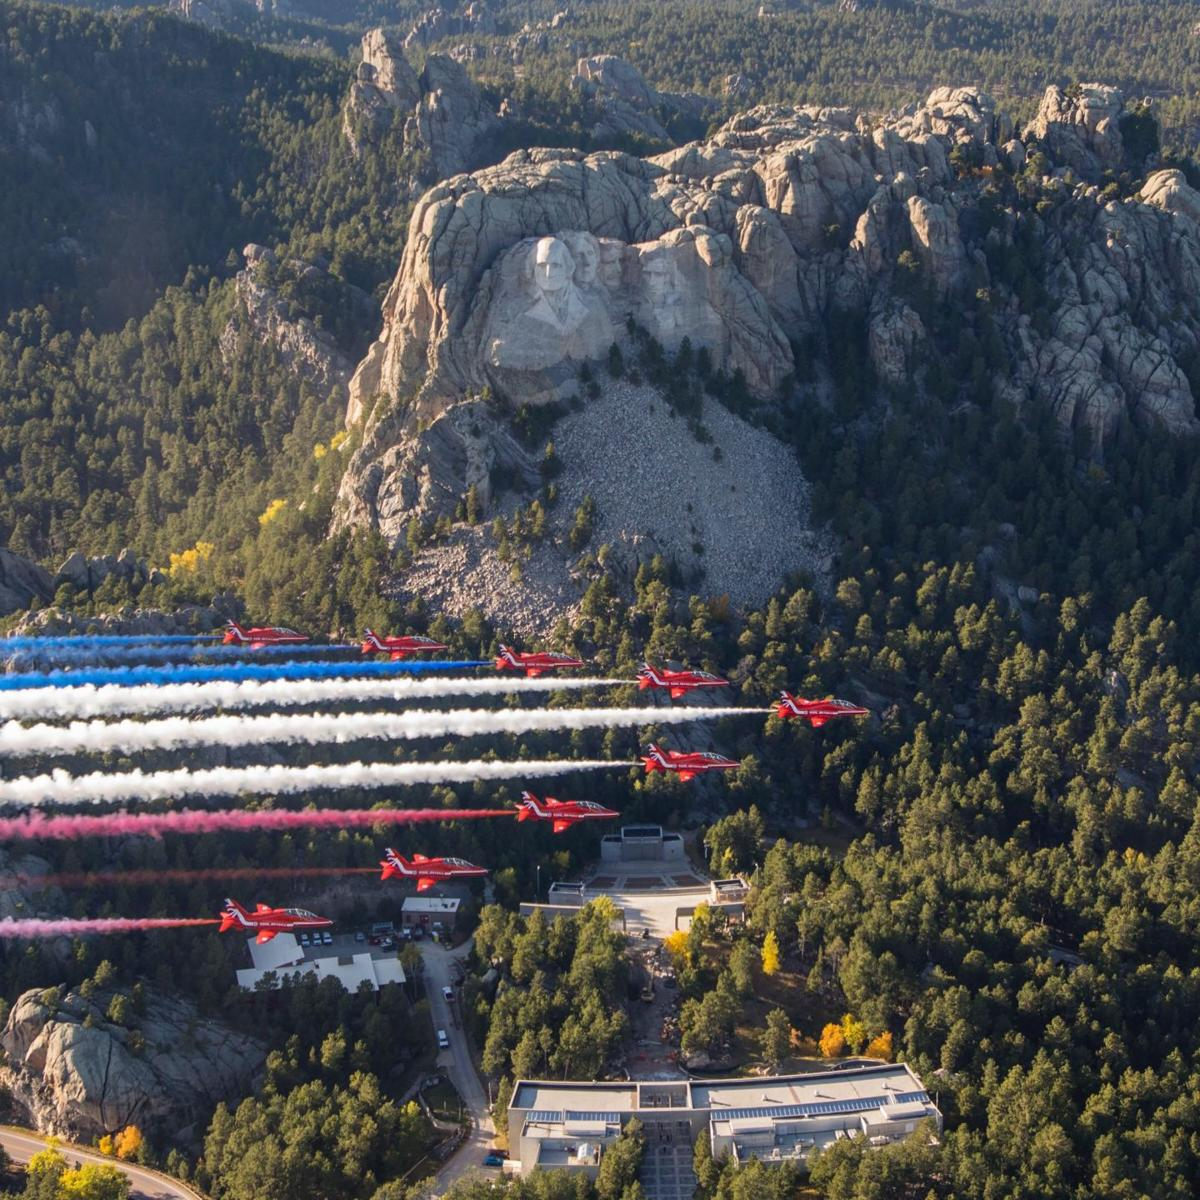 Red Arrows over Mount Rushmore